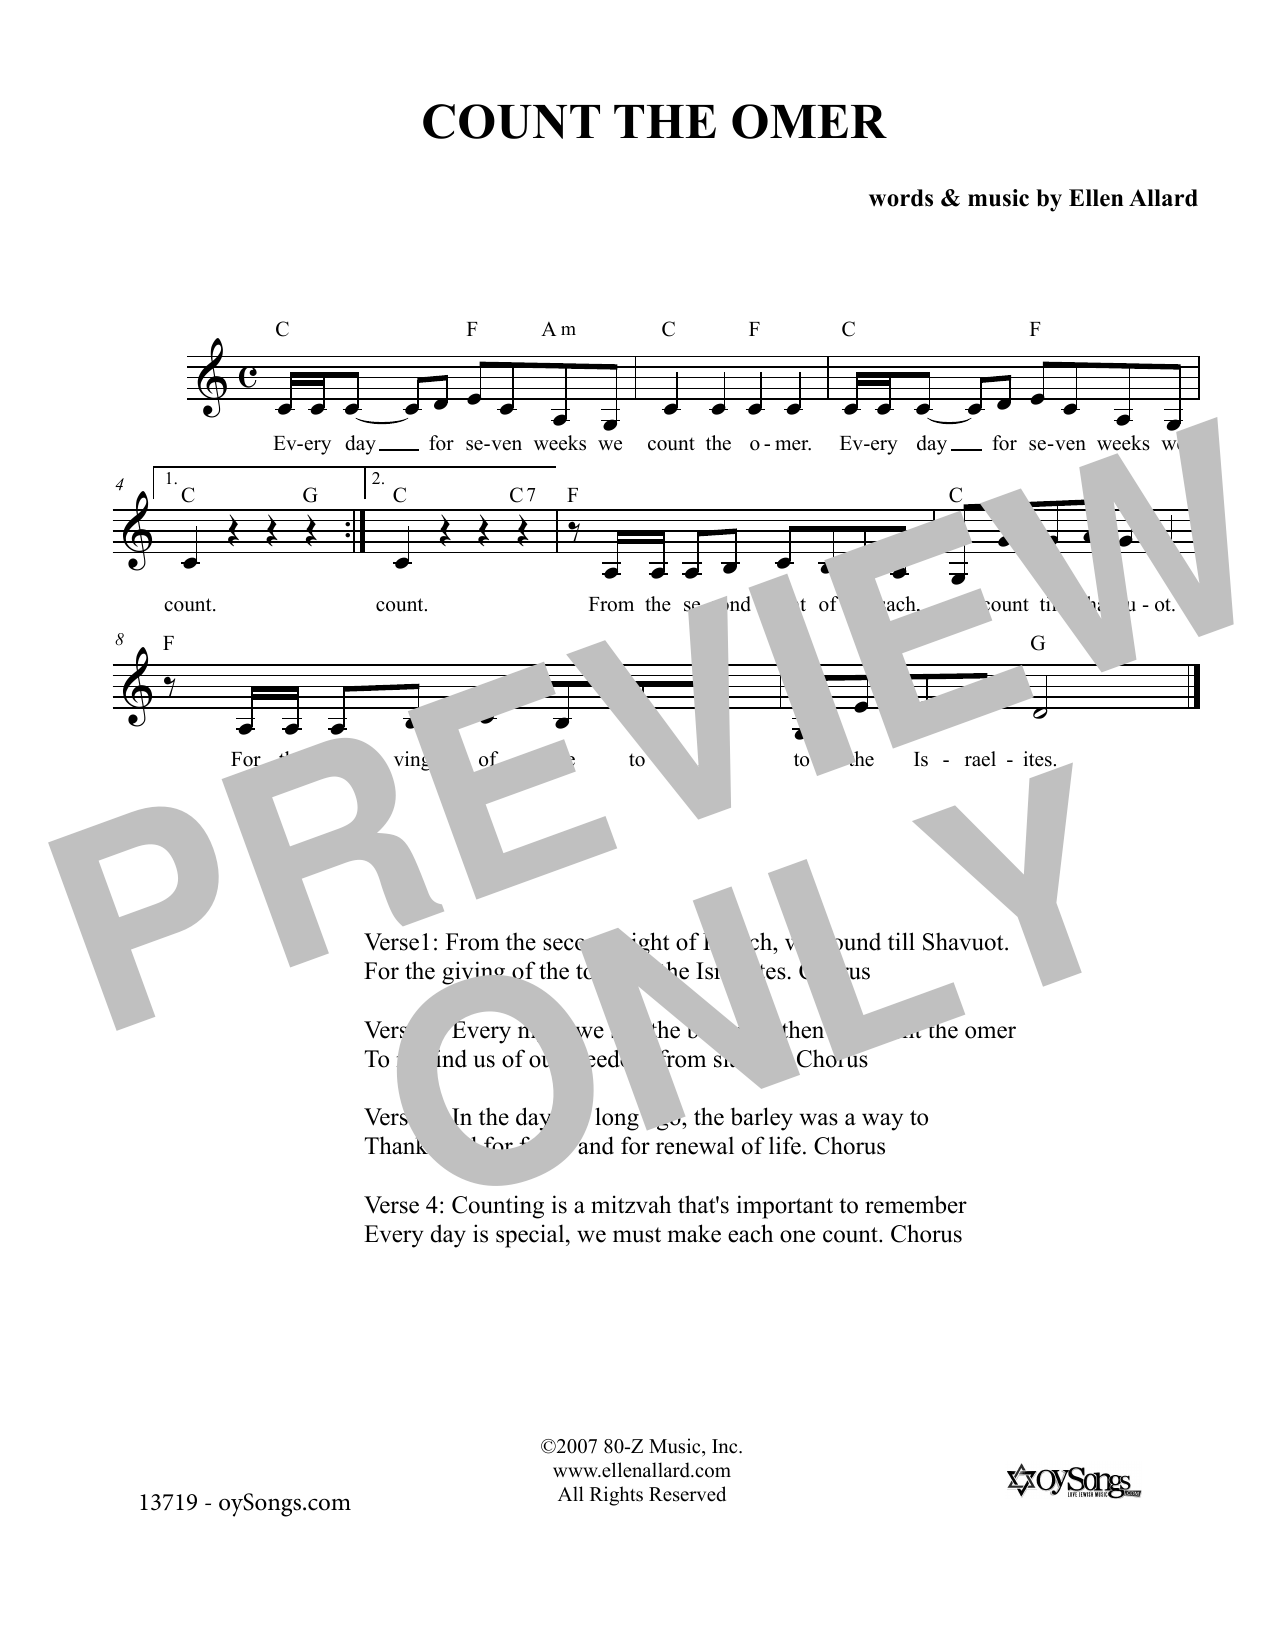 Ellen Allard Count the Omer sheet music notes and chords. Download Printable PDF.